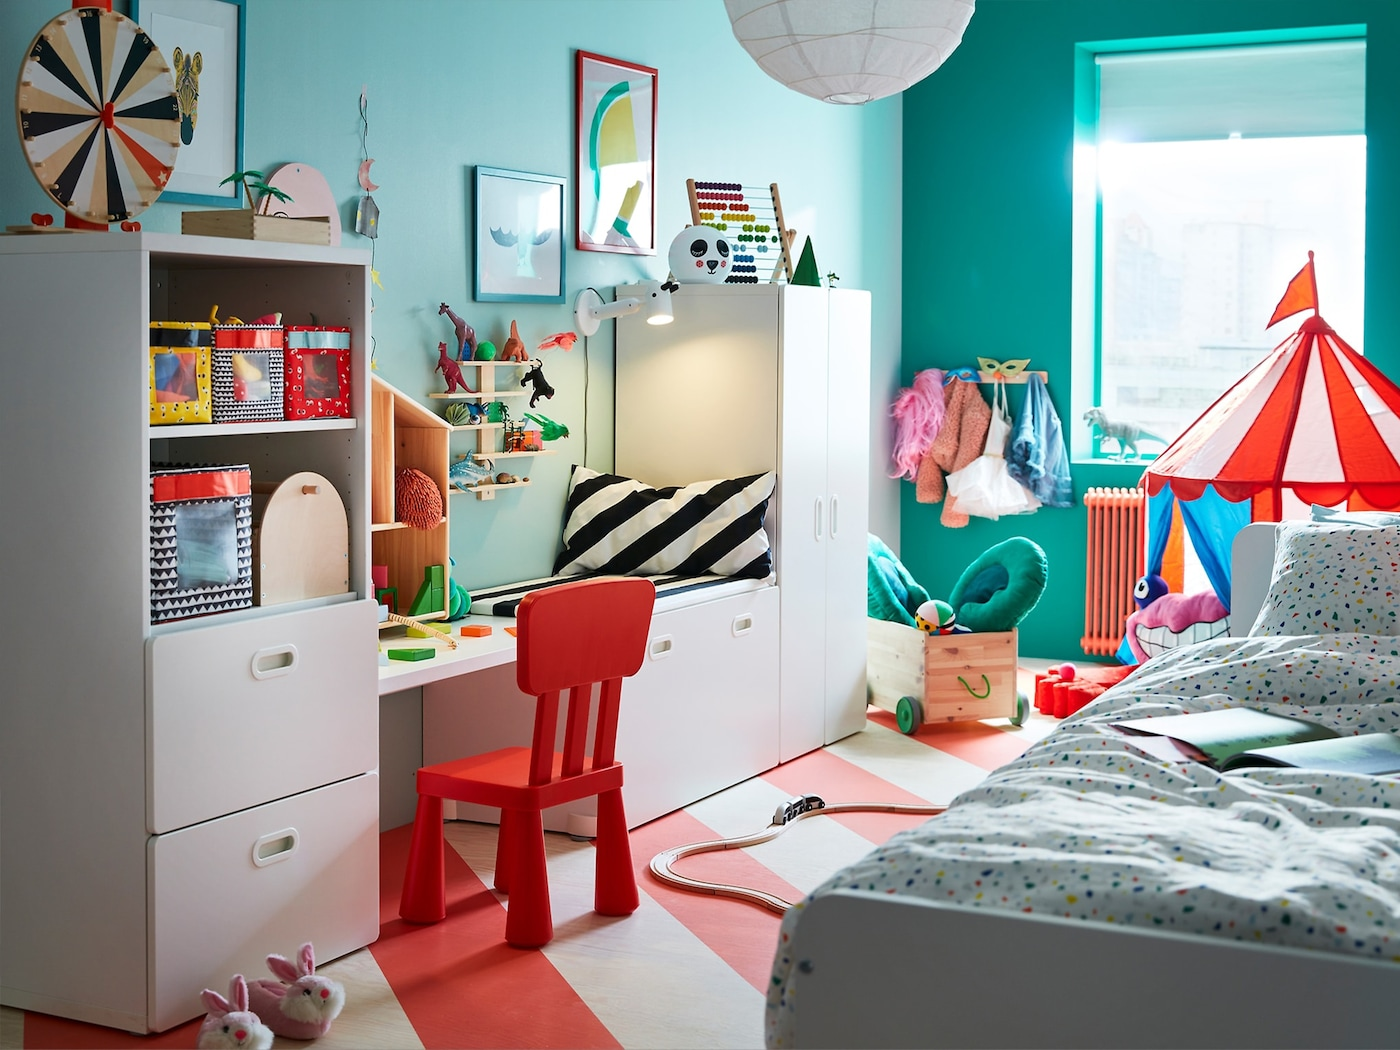 A bright carnival themed room for a child to explore their imagination